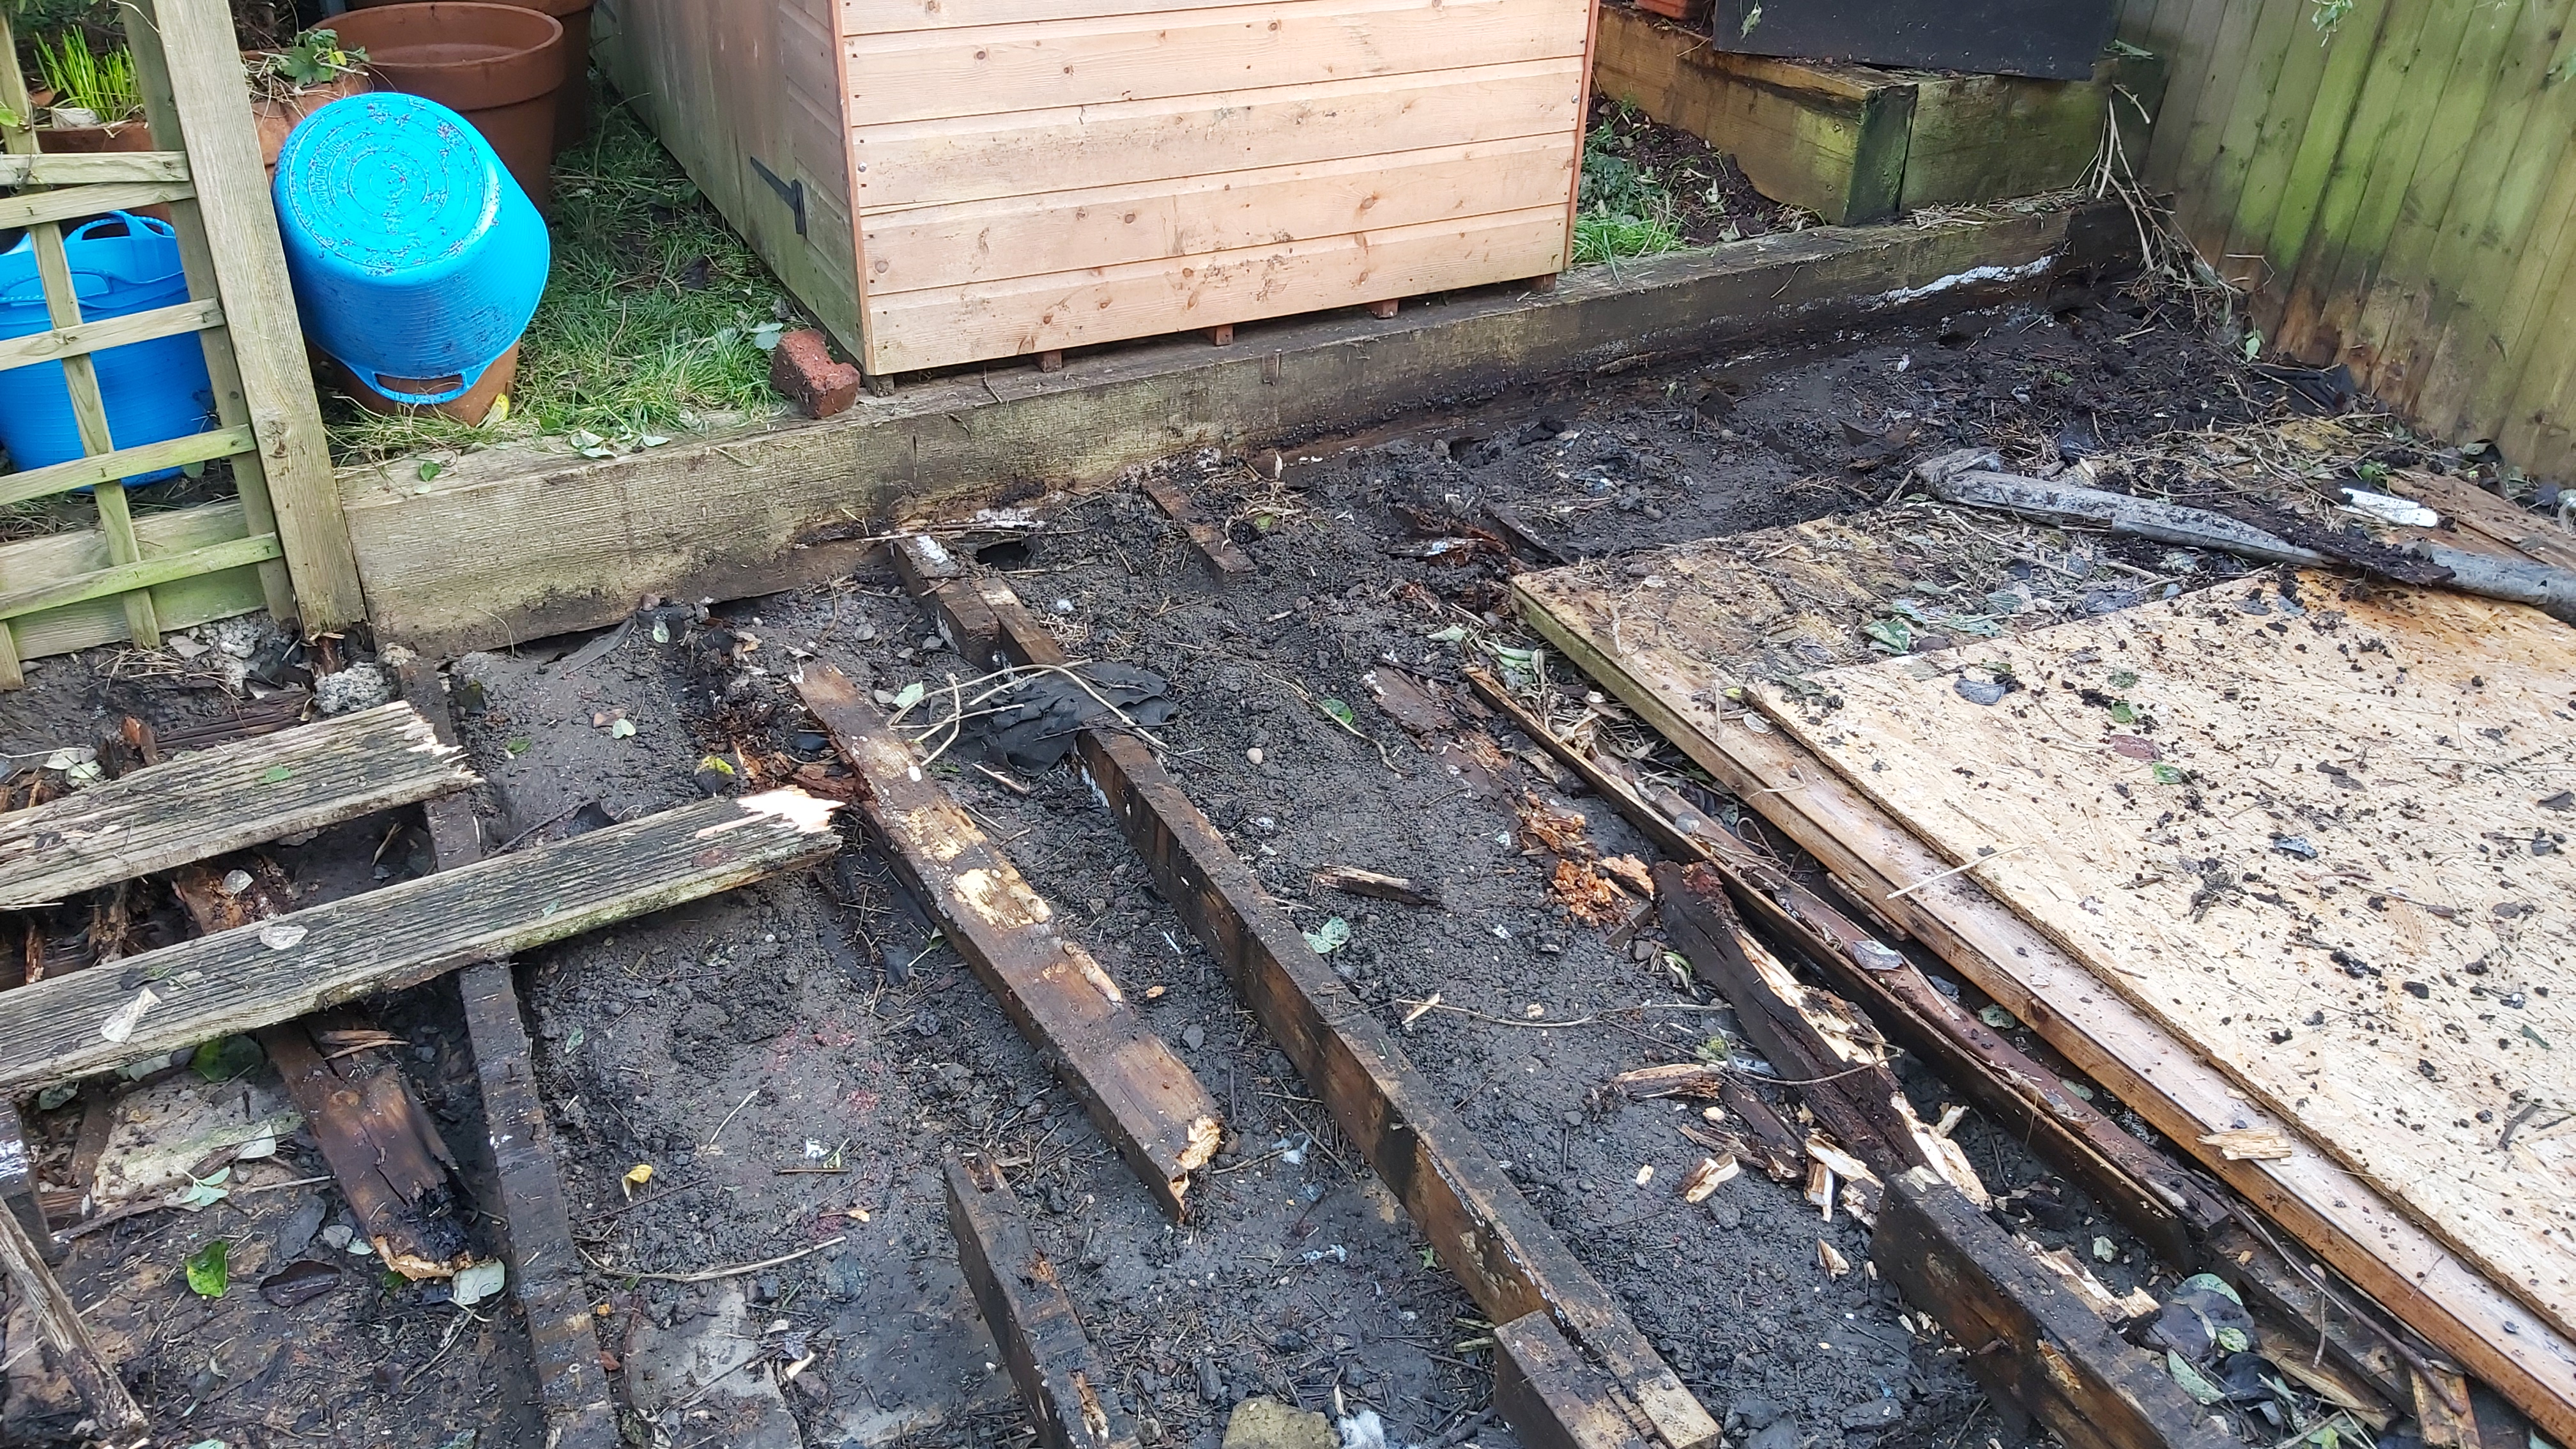 Rat burrows under decking